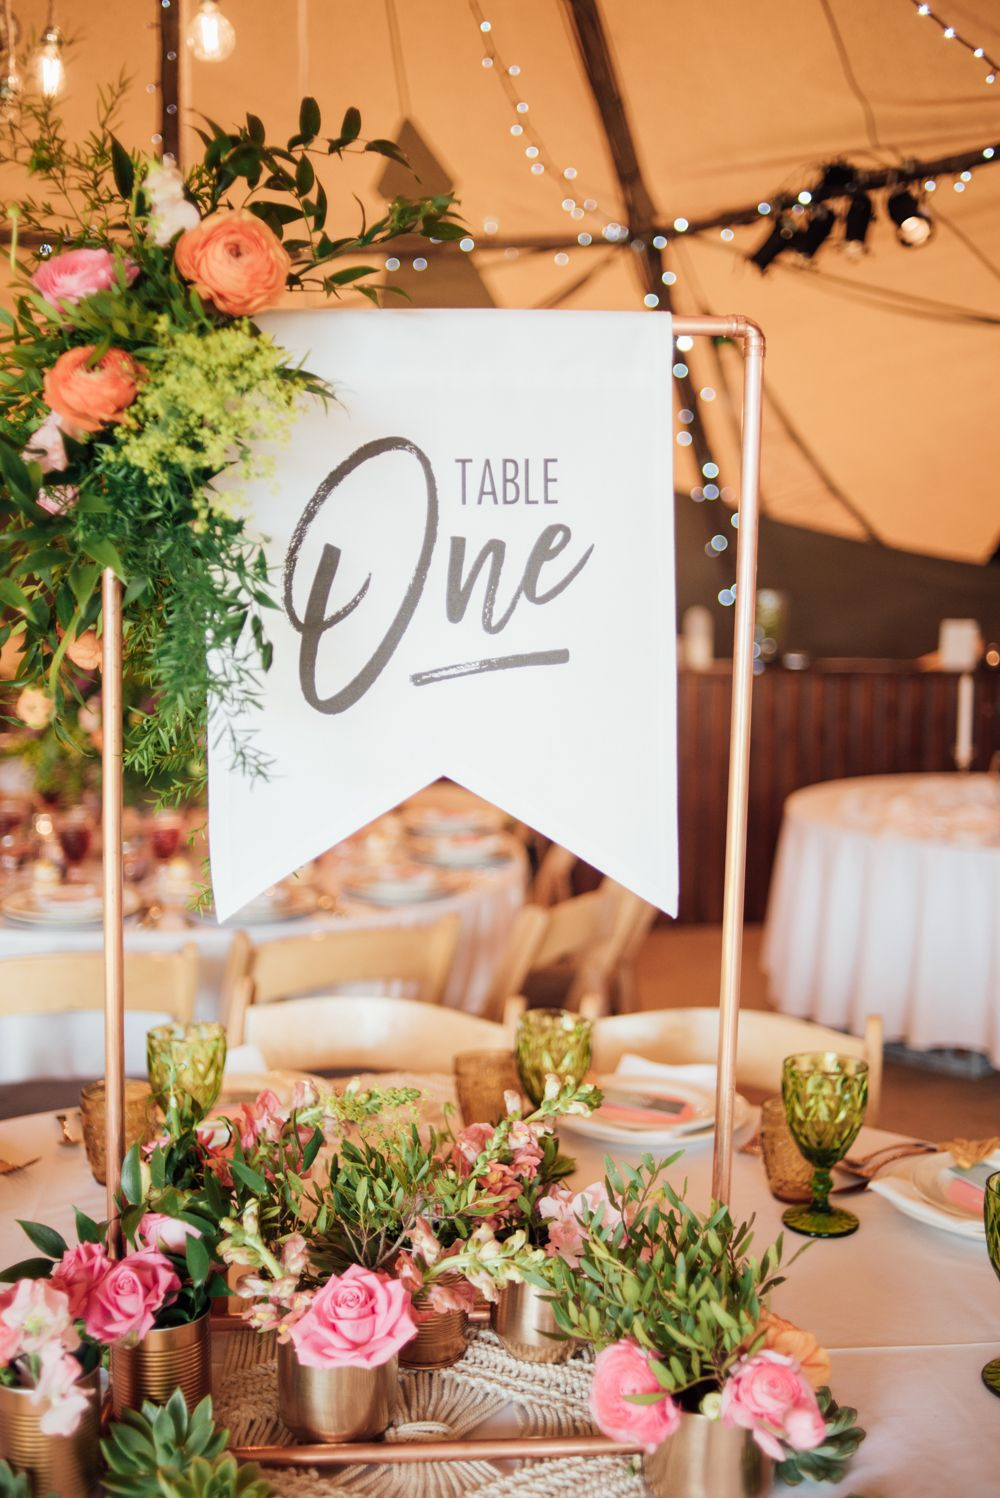 Flag table numbers for wedding world inspired tents tipi hire for weddings south west england wales tipi hire rock my wedding the list tipi hire